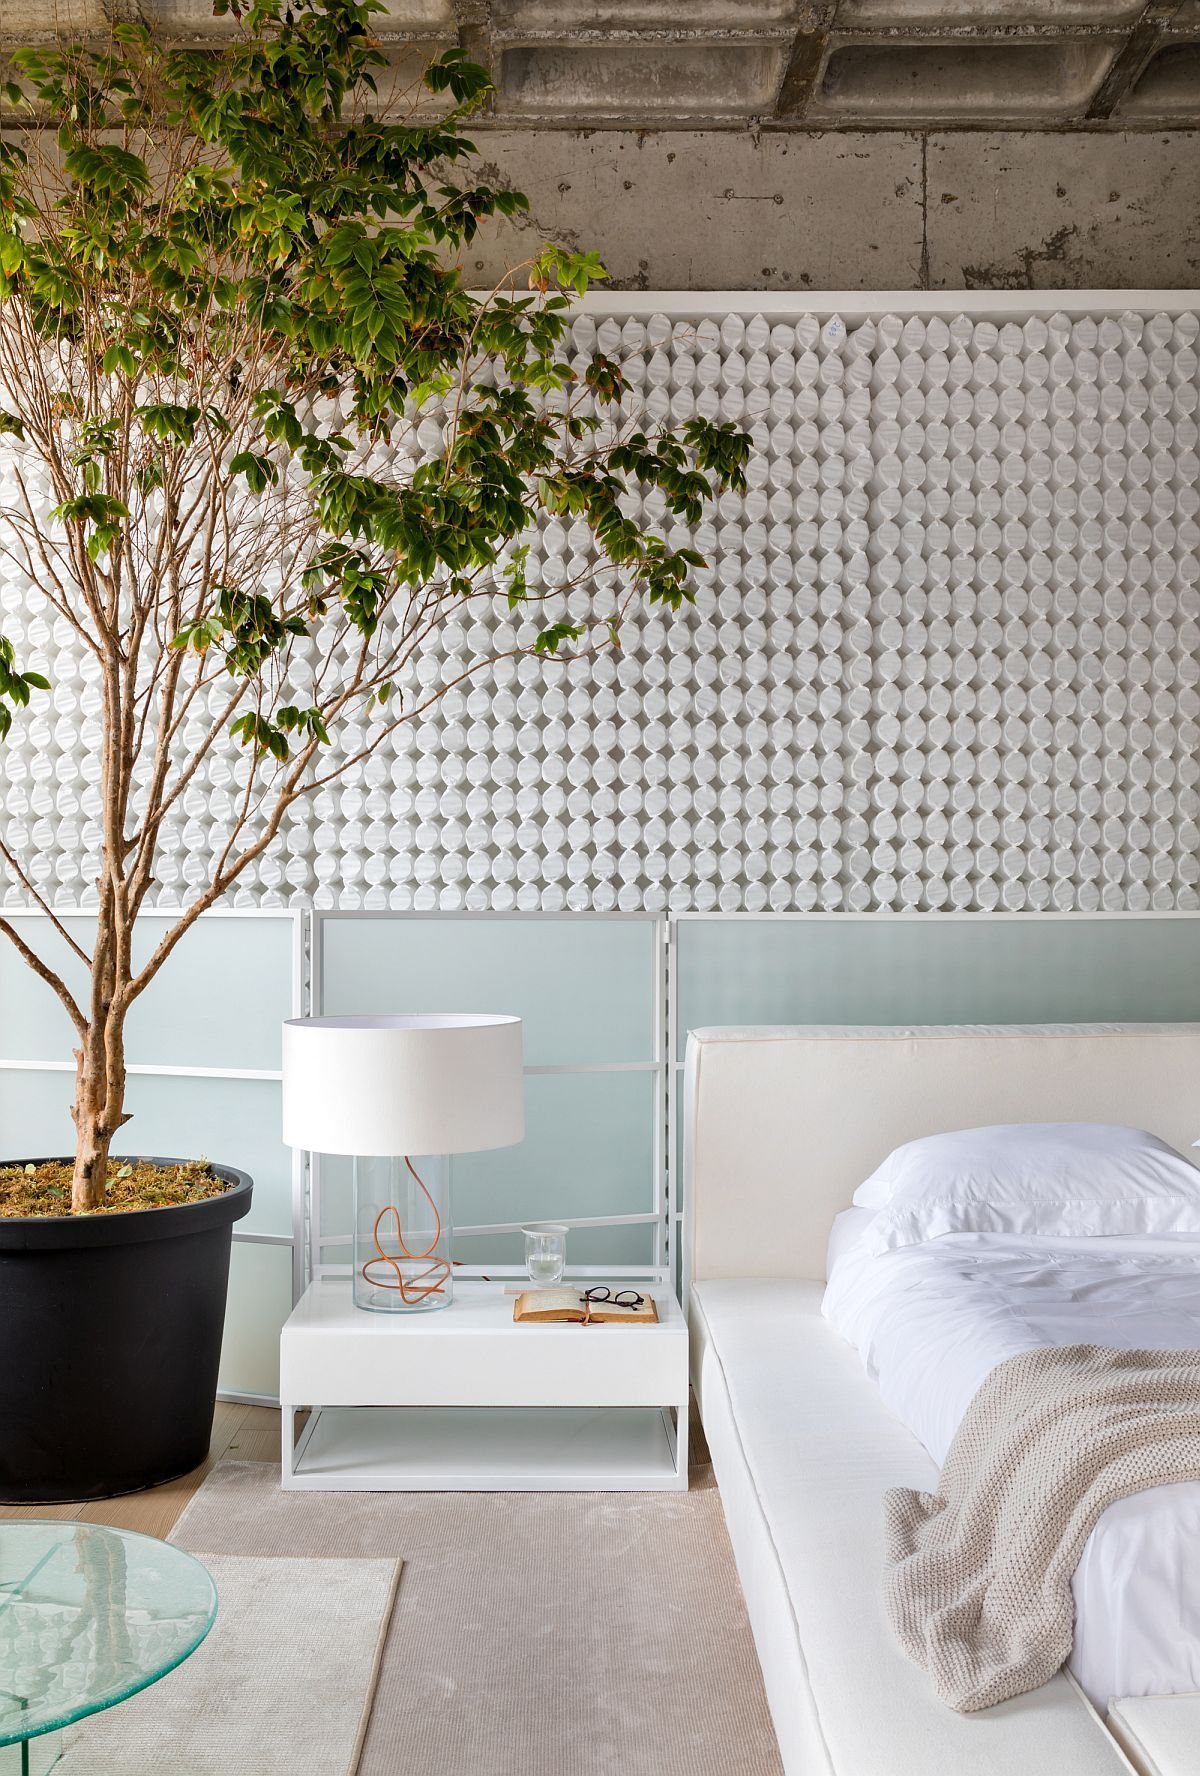 Large-indoor-pant-brings-visual-contrast-to-a-bedroom-in-white-and-muted-colors-61518